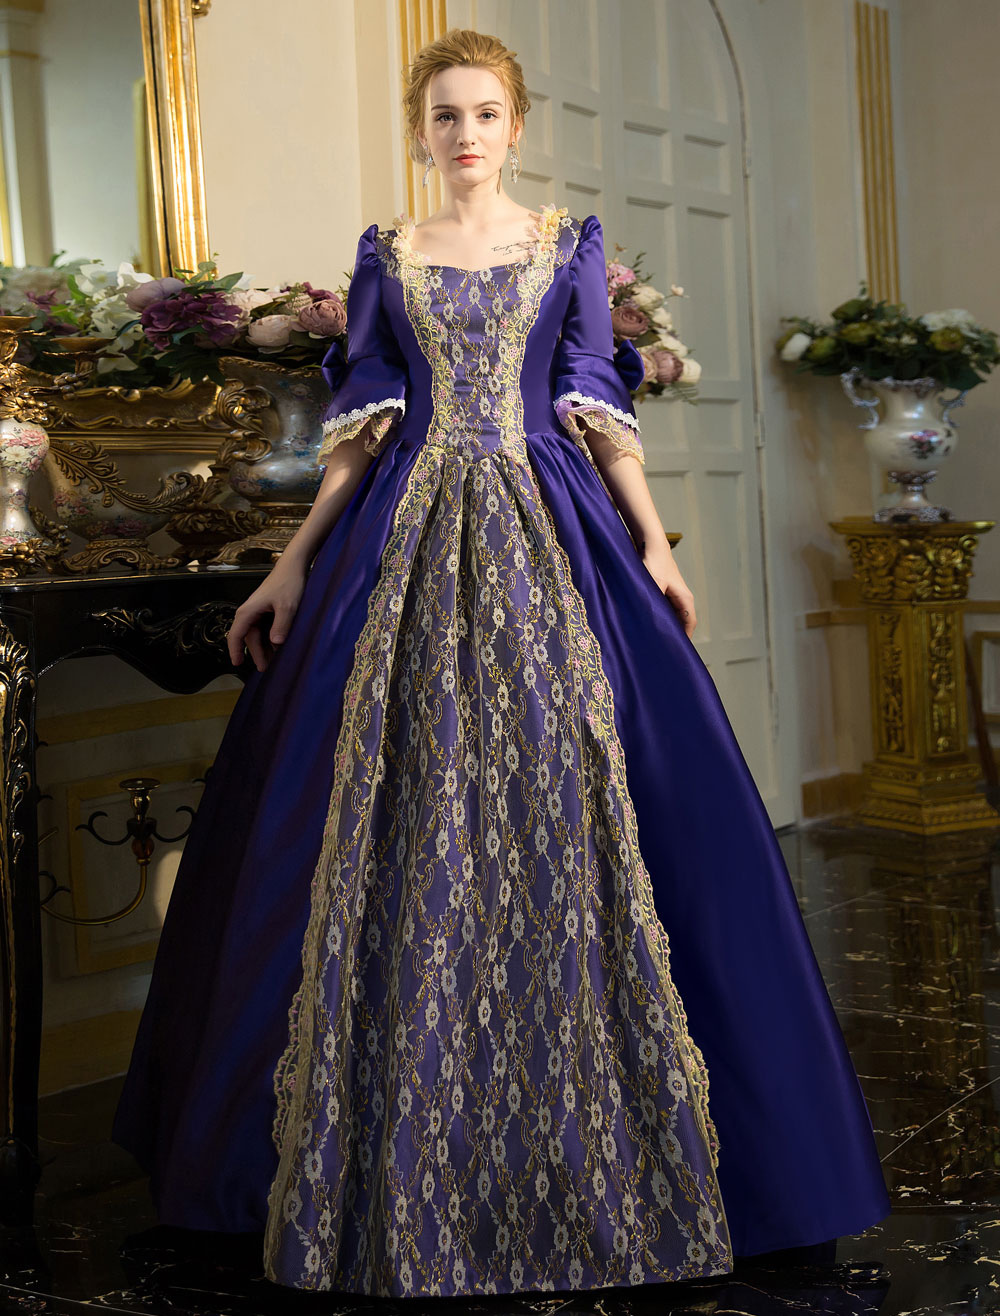 f317ac3049d7 Women's Retro Dress Baroque Costume Lace Embroidered Tunic Lace Up Ball  Gown Dress Halloween - Milanoo.com